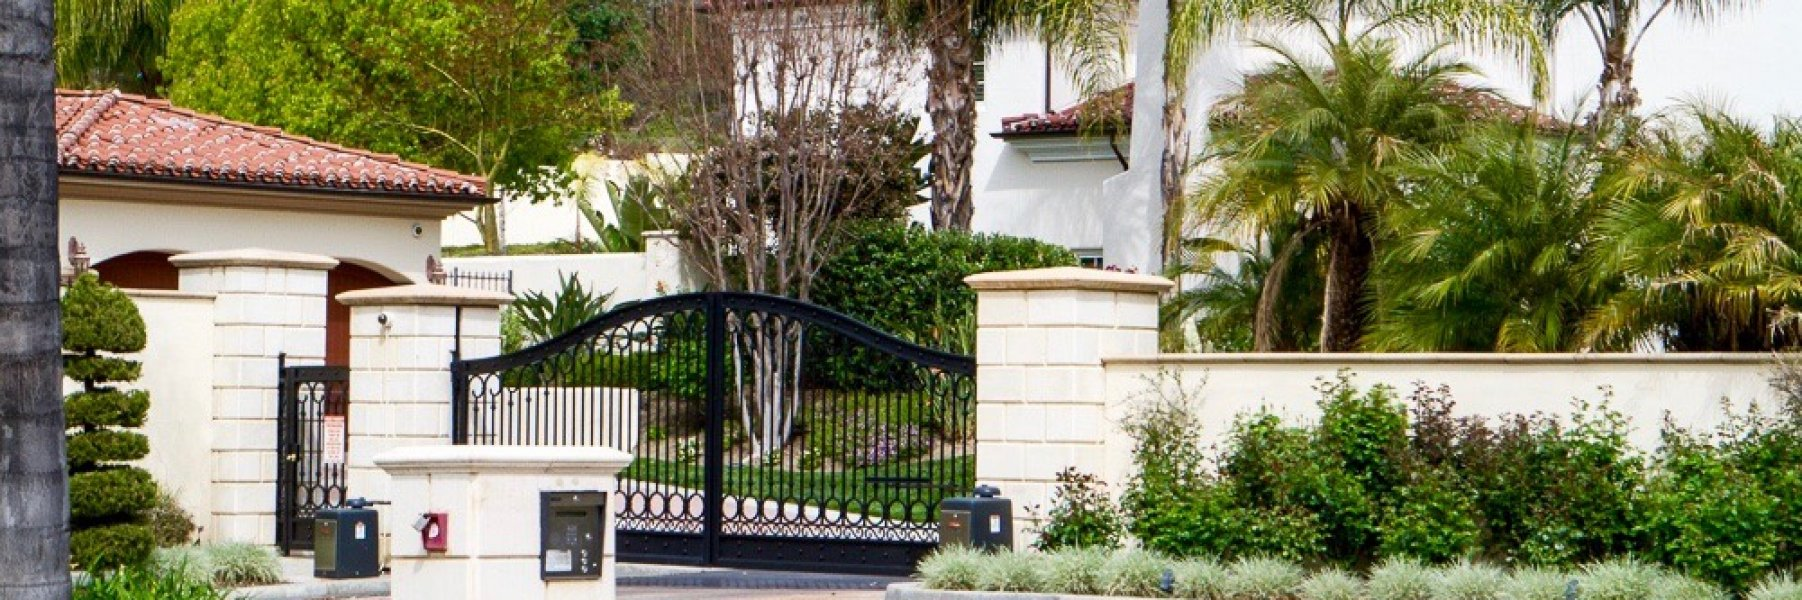 Monte Verde Estates is a community of homes in Tarzana California